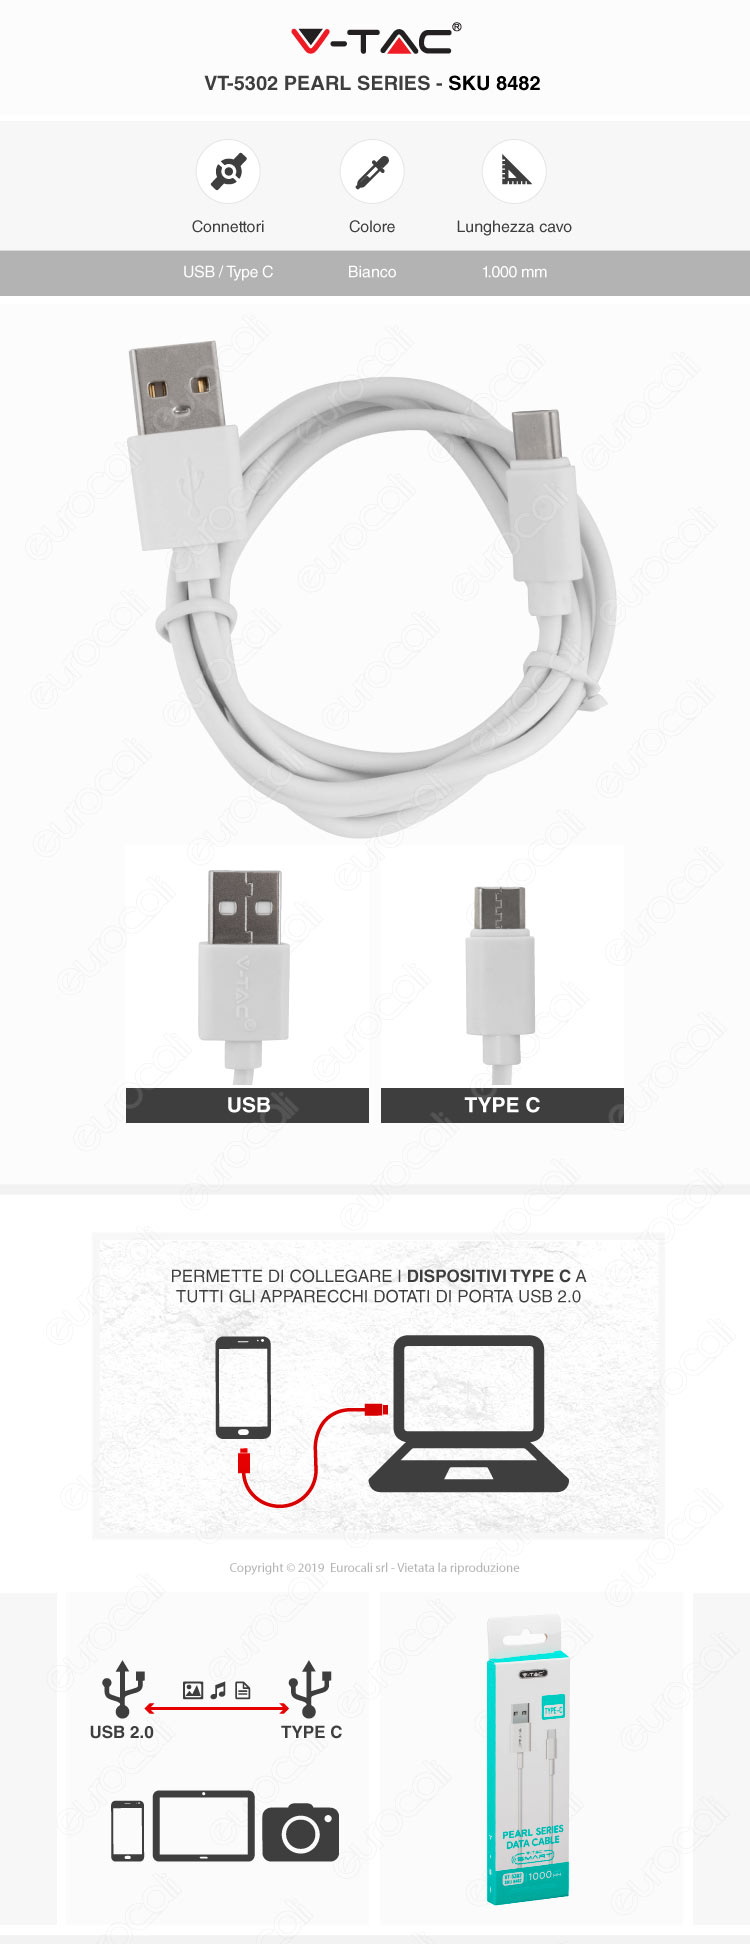 V-Tac VT-5302 Pearl series USB Data Cable Type-C Cavo Colore Bianco 1m